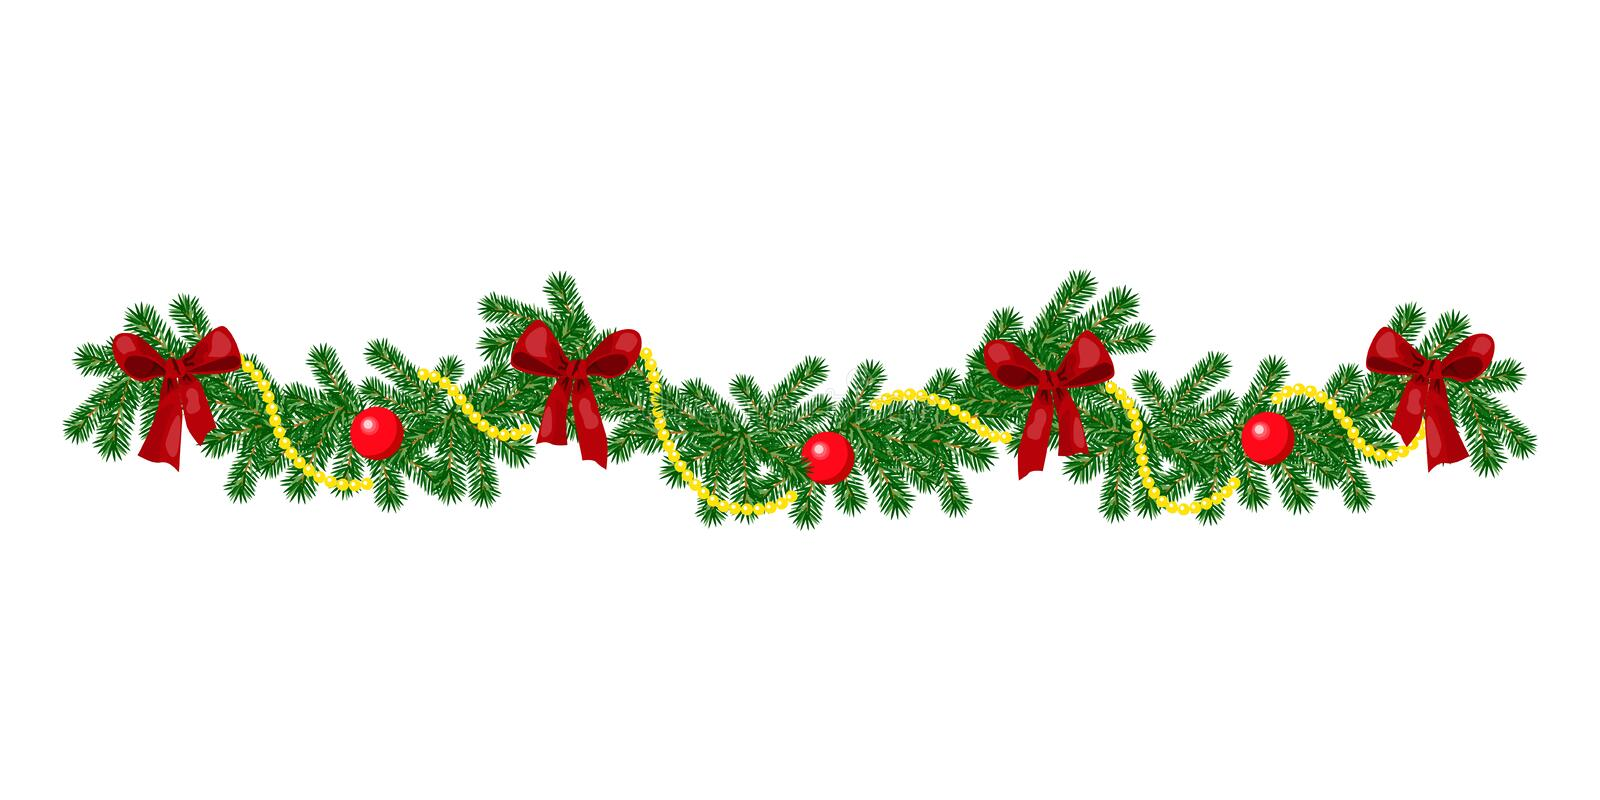 Christmas border with hanging garland of fir branches, red and silver baubles, pine cones and other ornaments royalty free stock images